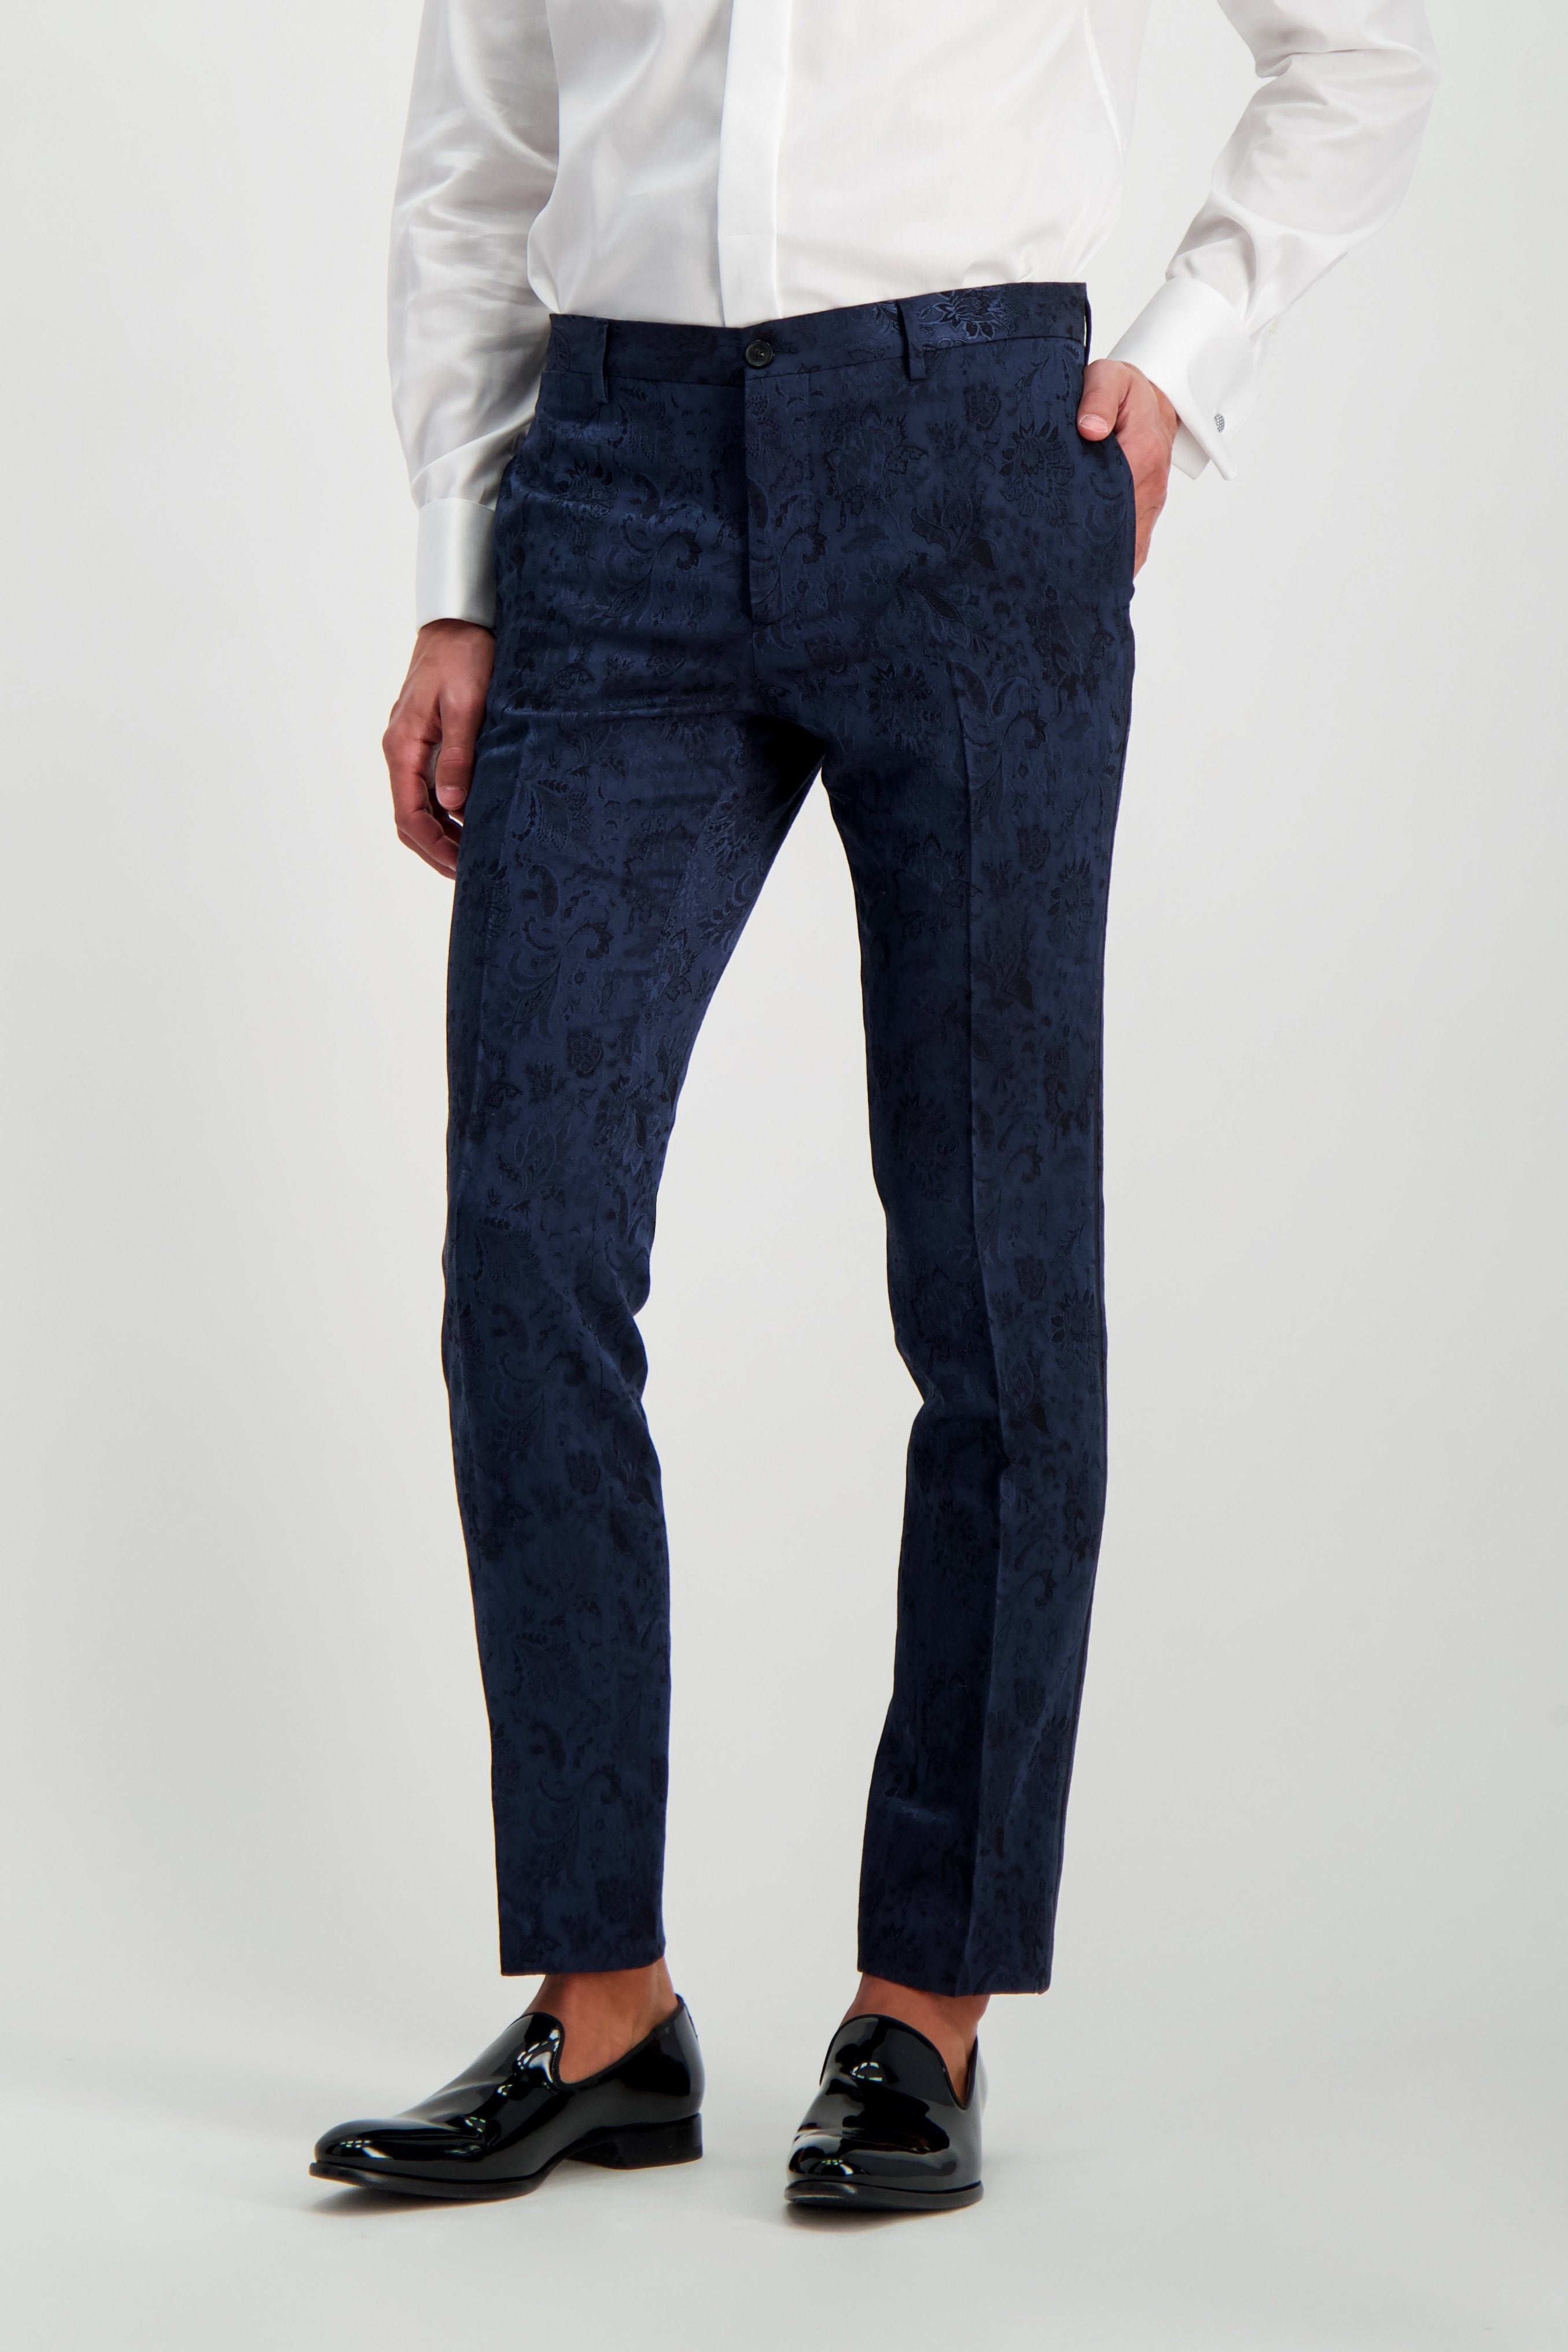 Front Crop Image Of Model Wearing Etro Neutra Trousers Navy